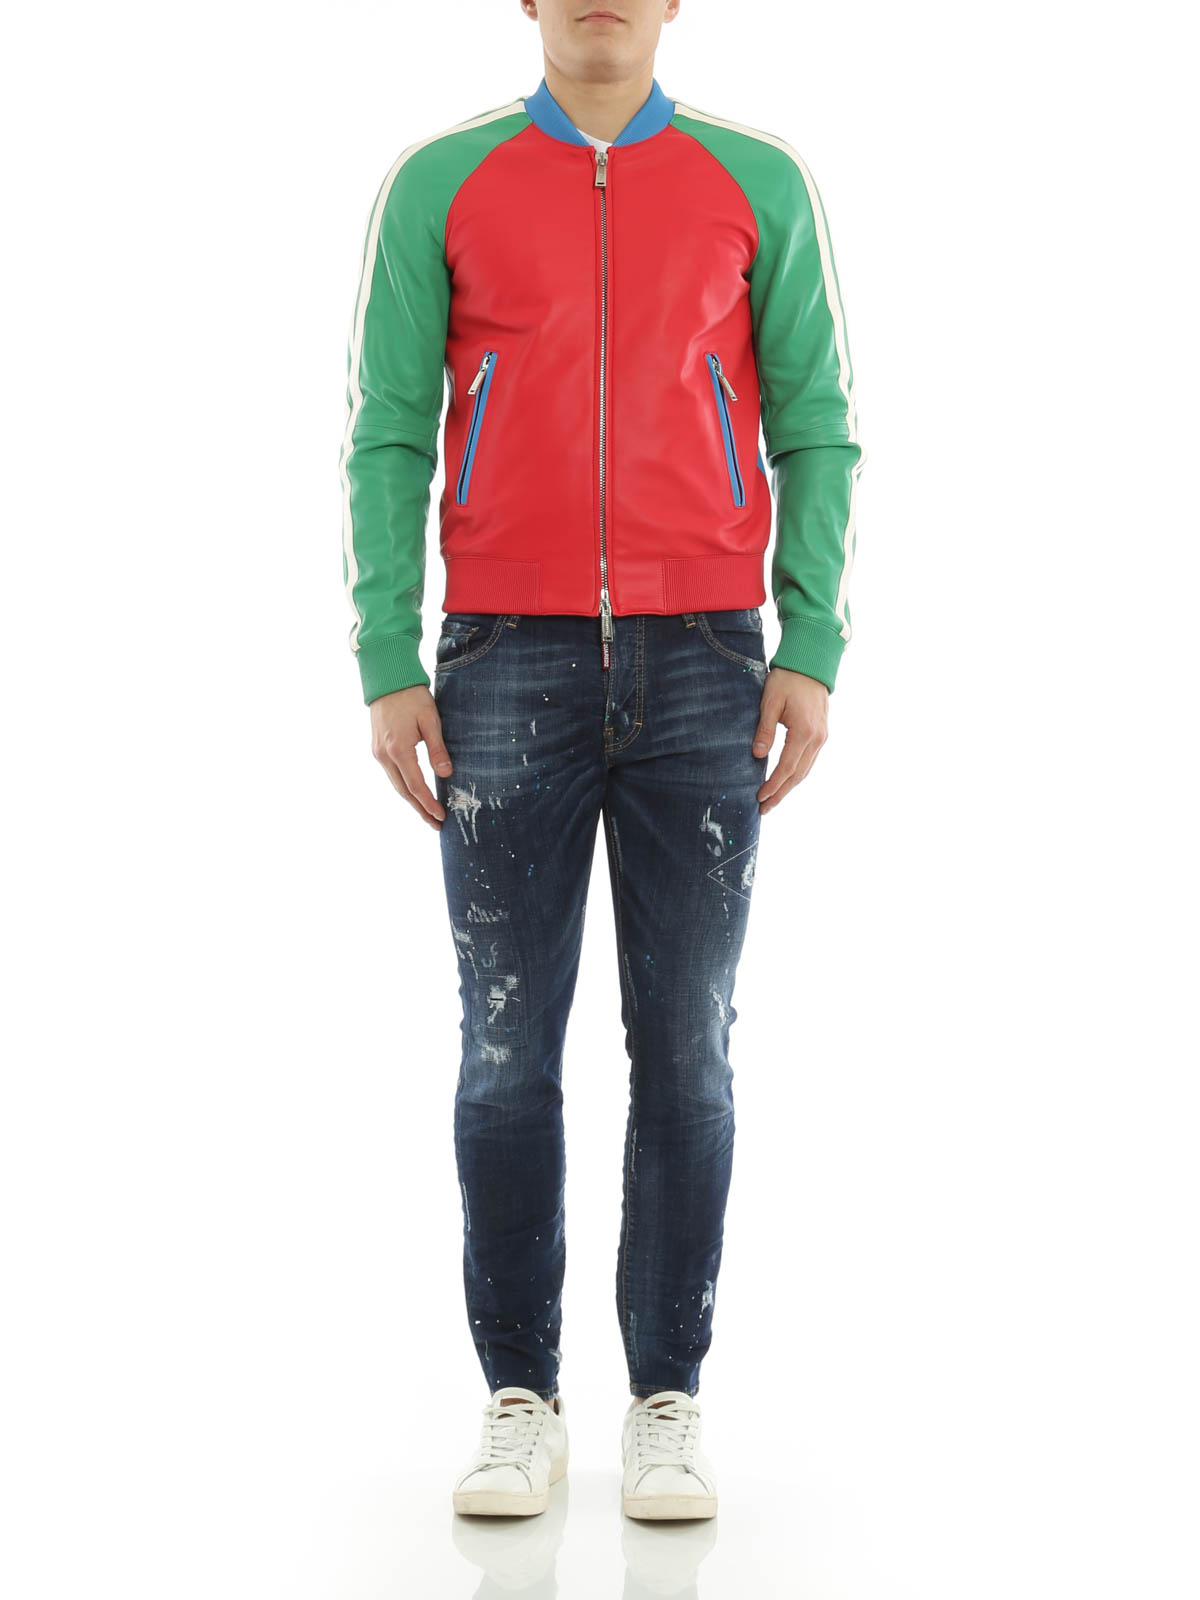 13b0fb7f809 Dsquared2 - Colourful bomber jacket - leather jacket - S74AM0590 ...